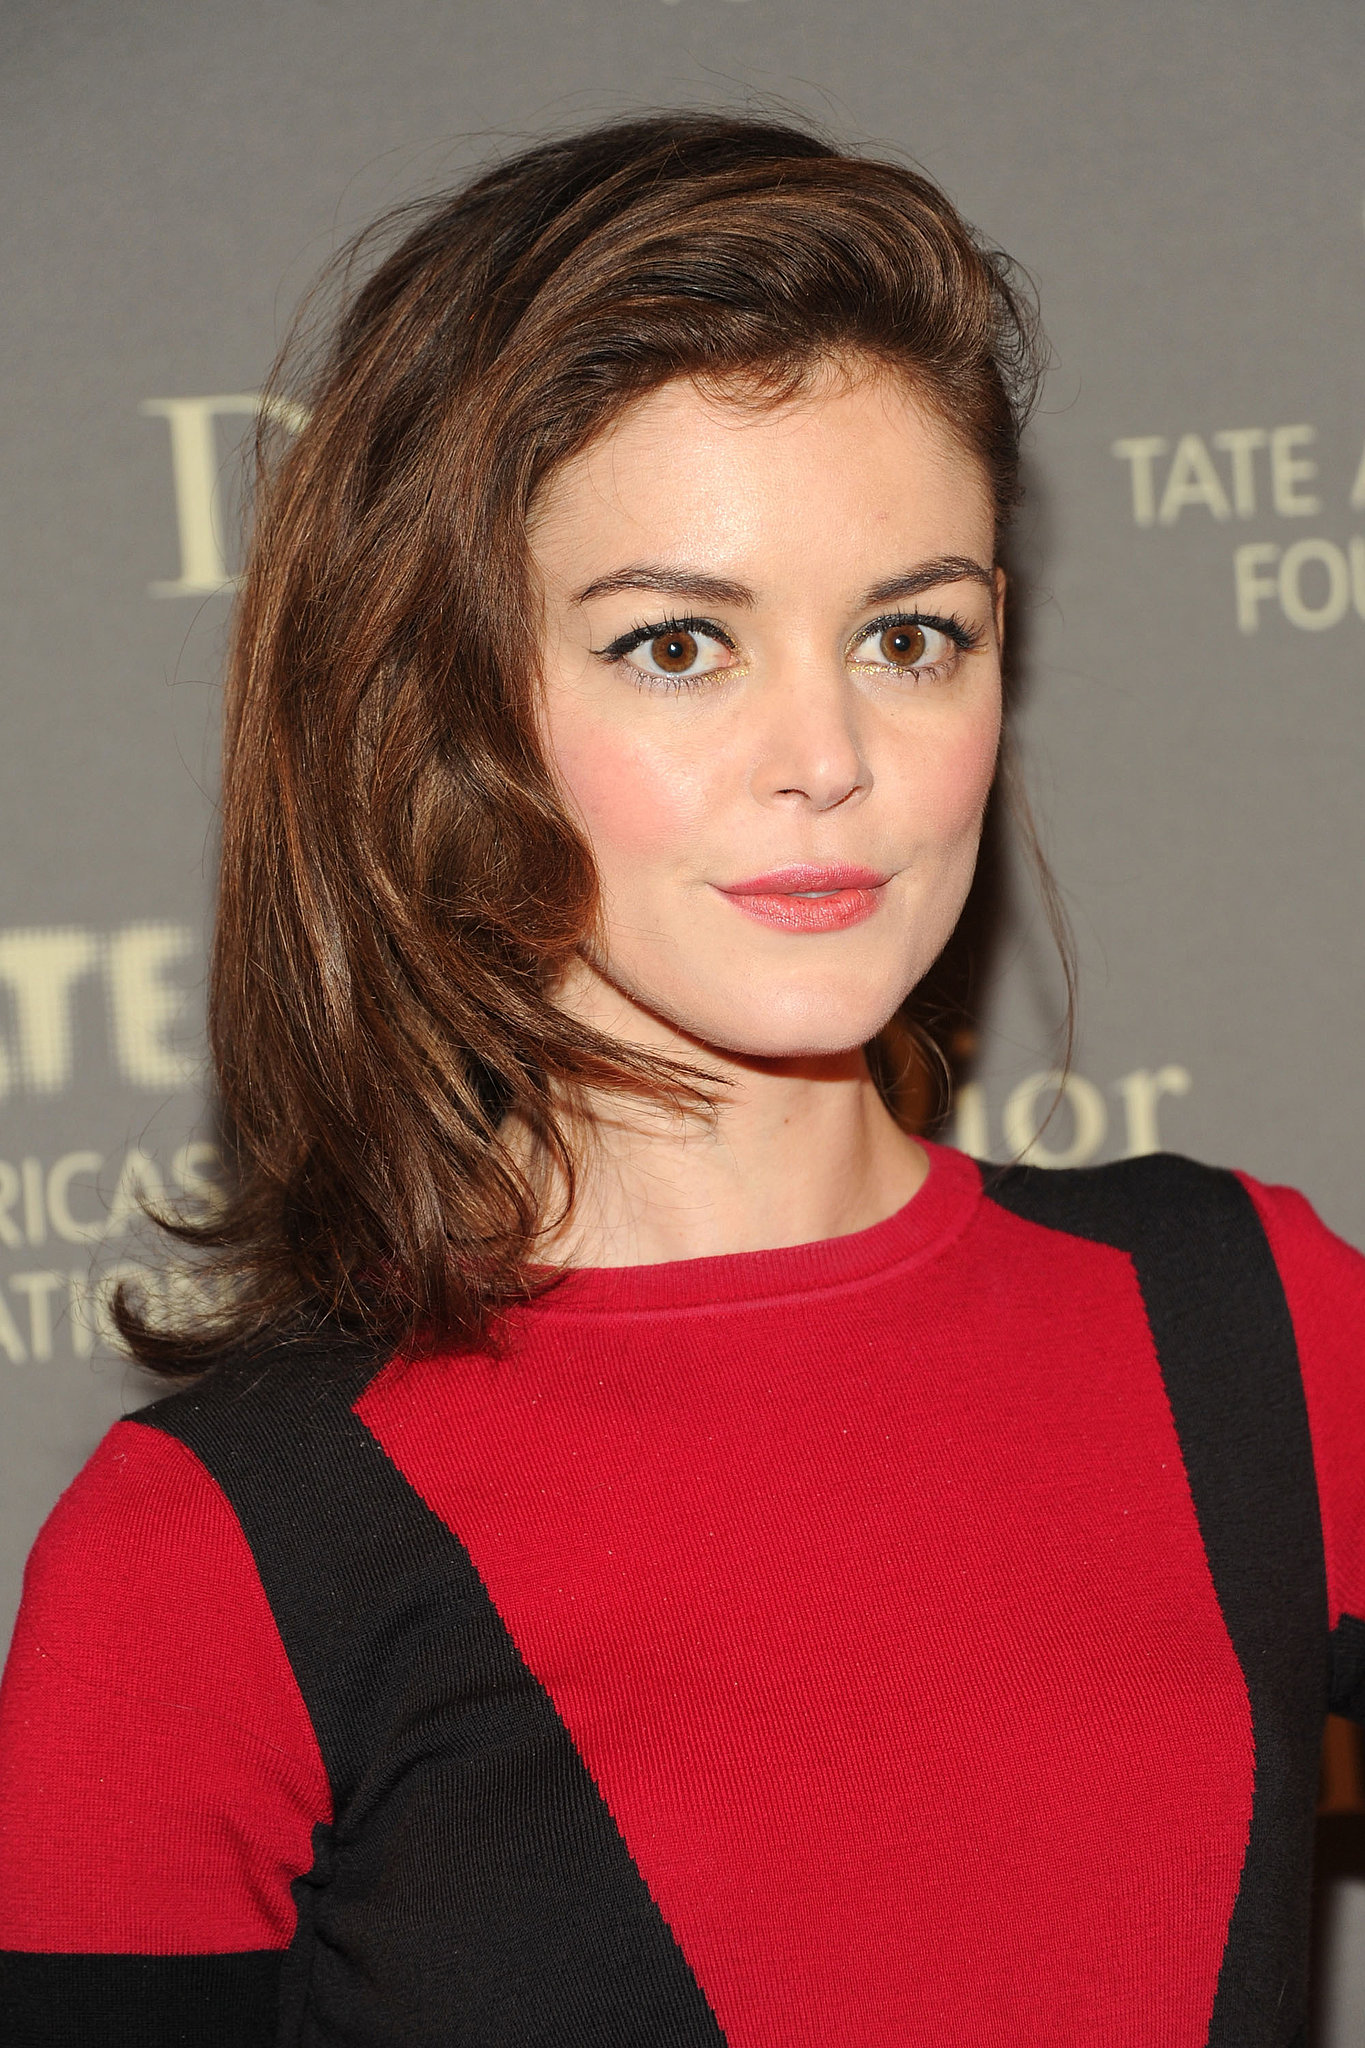 Nora Zehetner born February 5, 1981 (age 37)